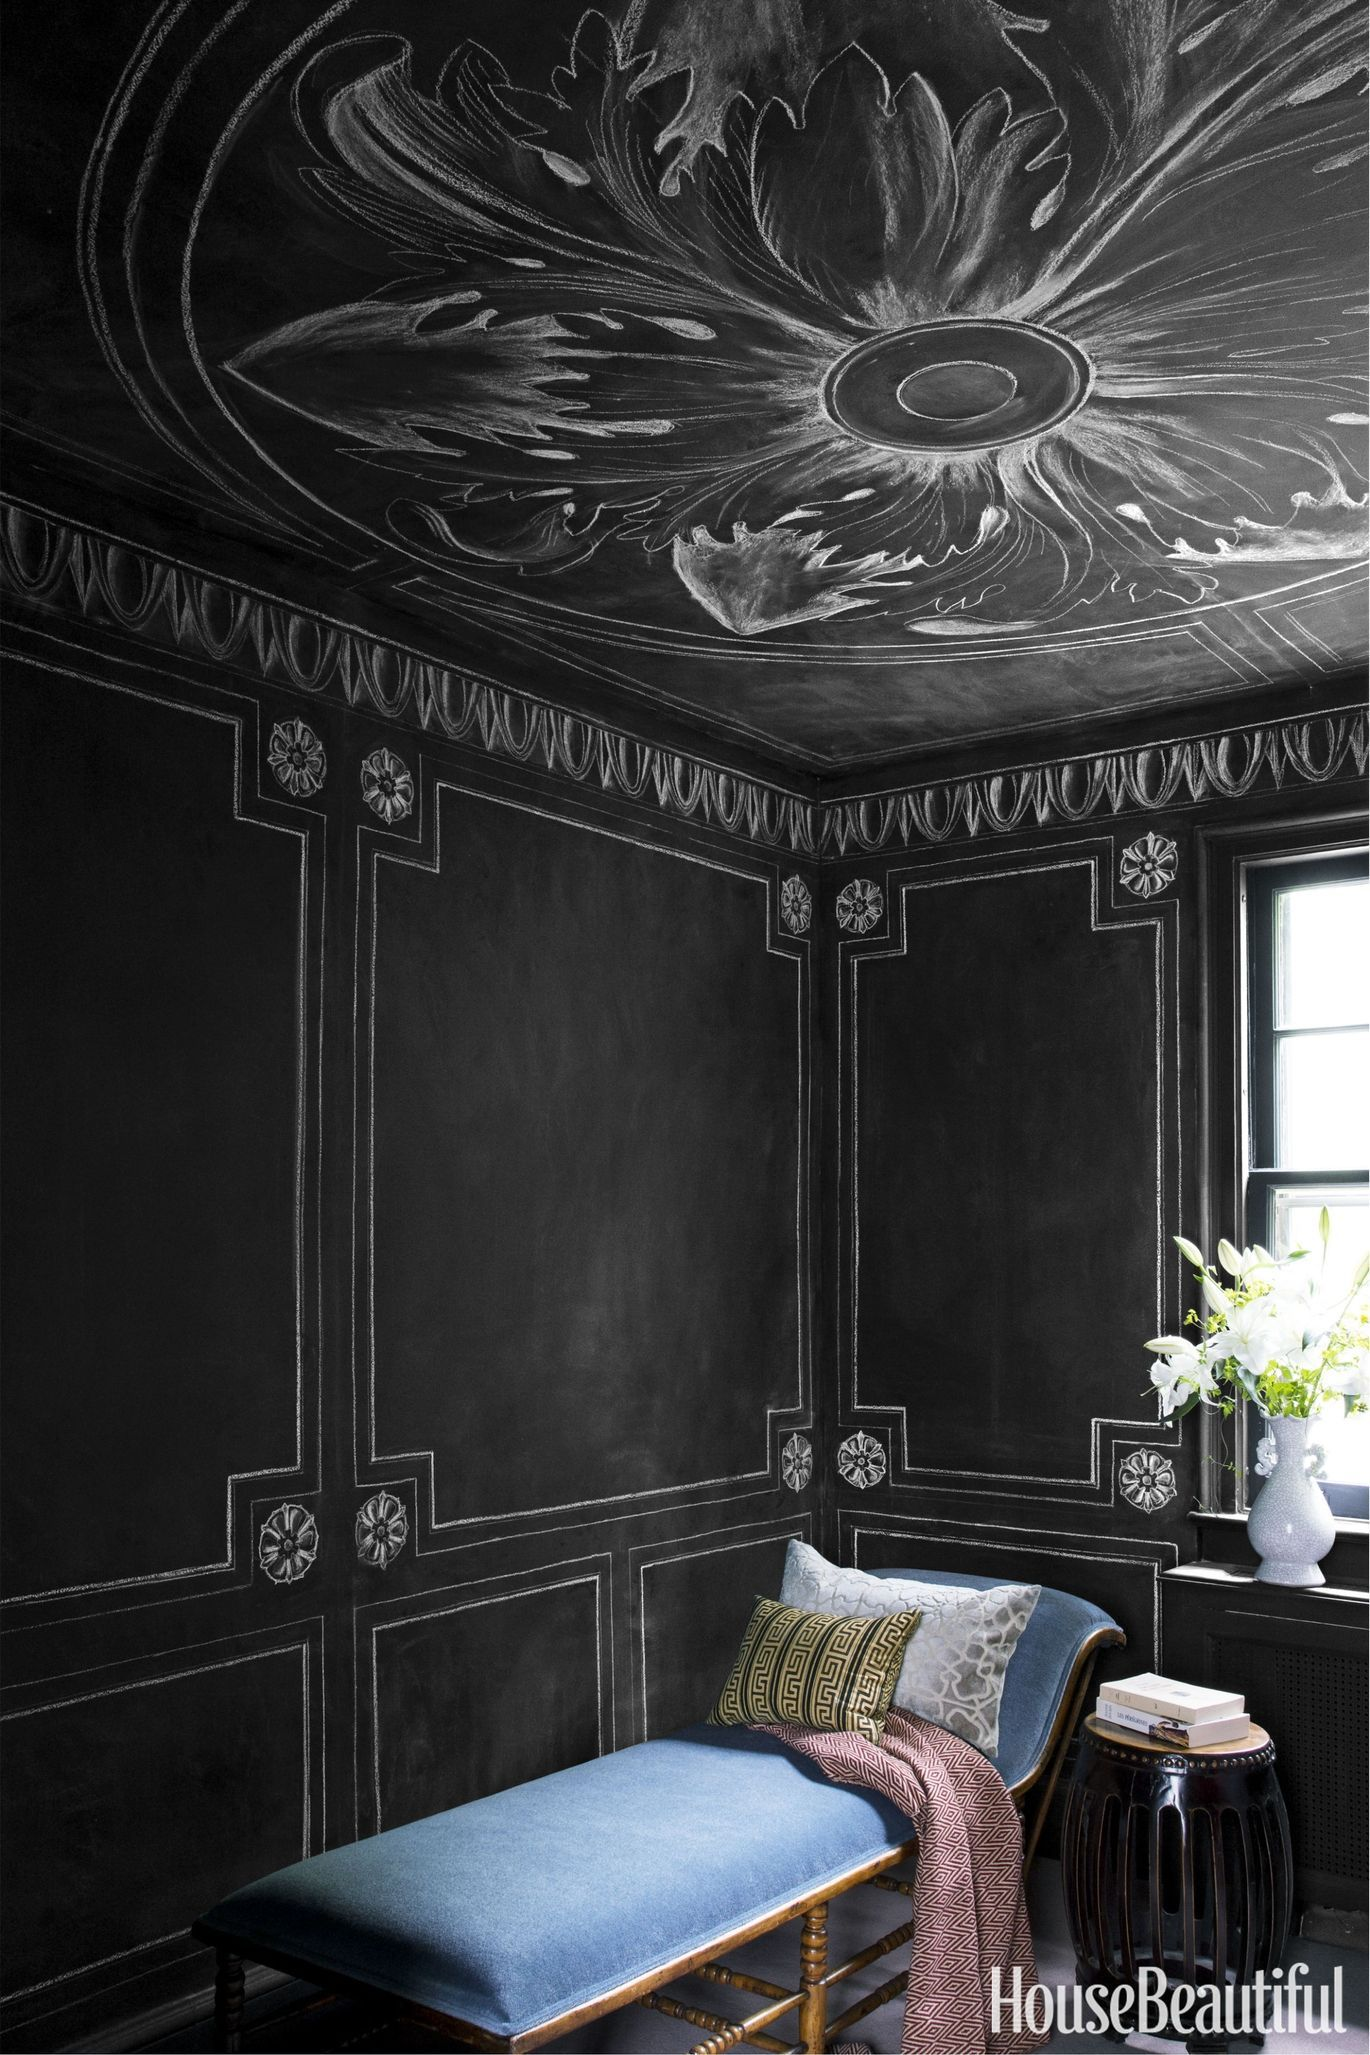 Best 15 Black Home Decor And Room Ideas Decorating With Black This Month